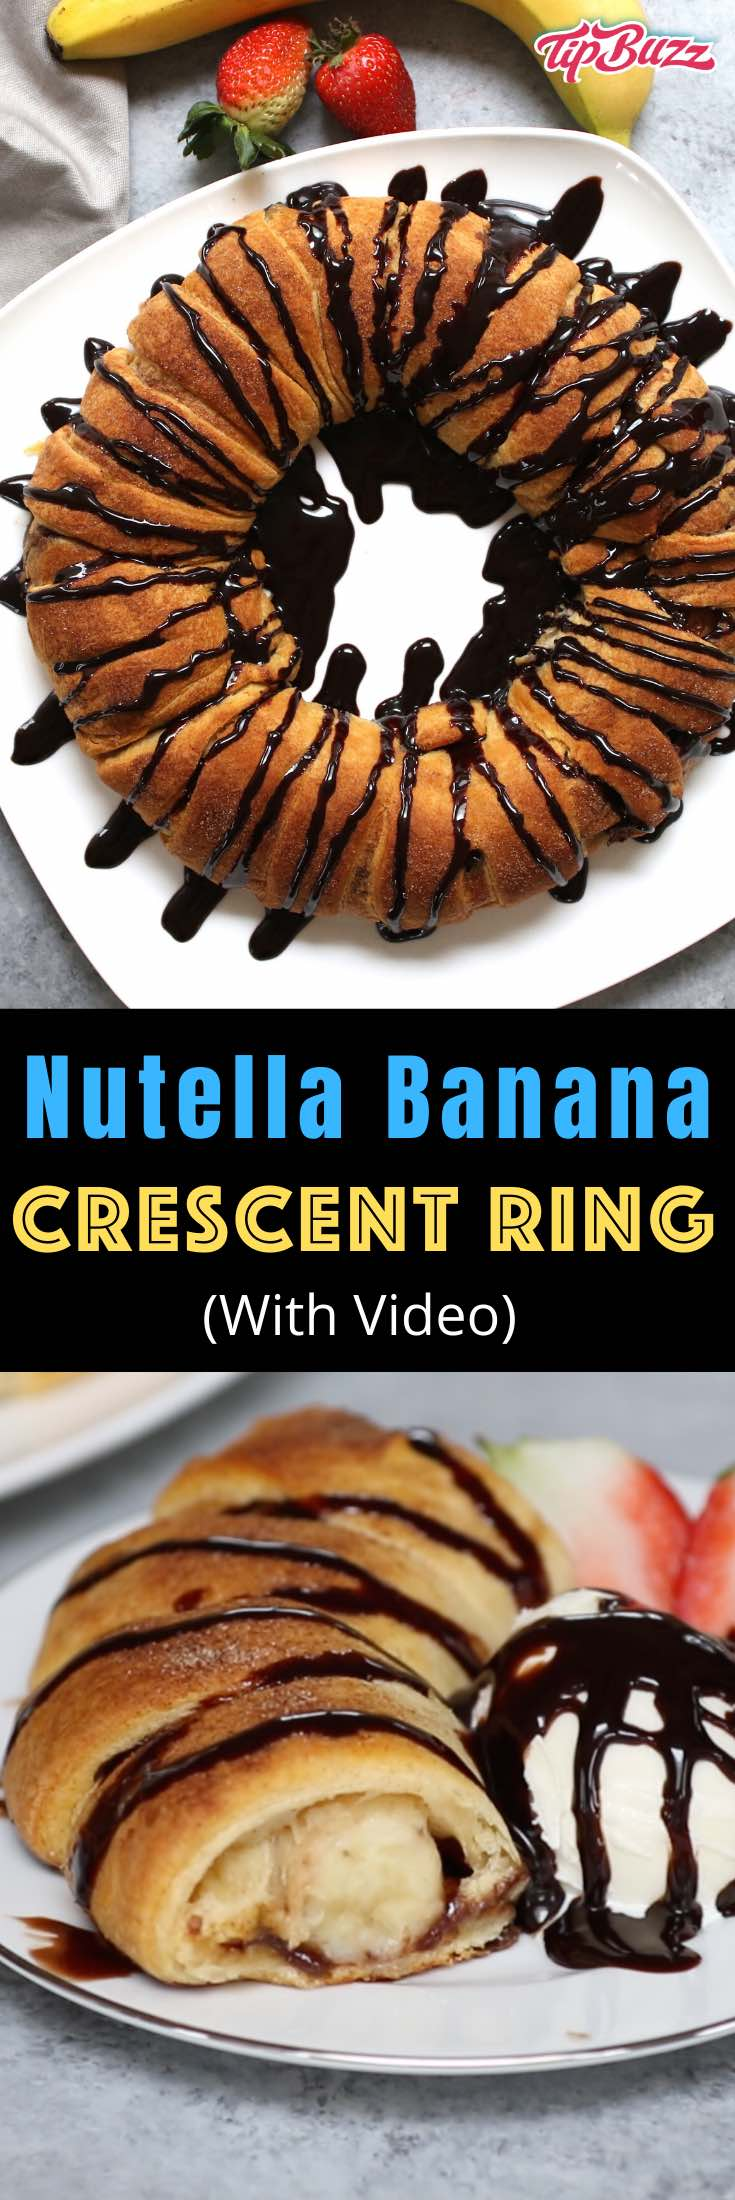 Nutella Banana Crescent Ring is a mouthwatering combination of Nutella and banana in a unique flakey pastry ring. It's a festive idea for a party with a stunning presentation, perfect for brunch or get-togethers. Plus video tutorial!